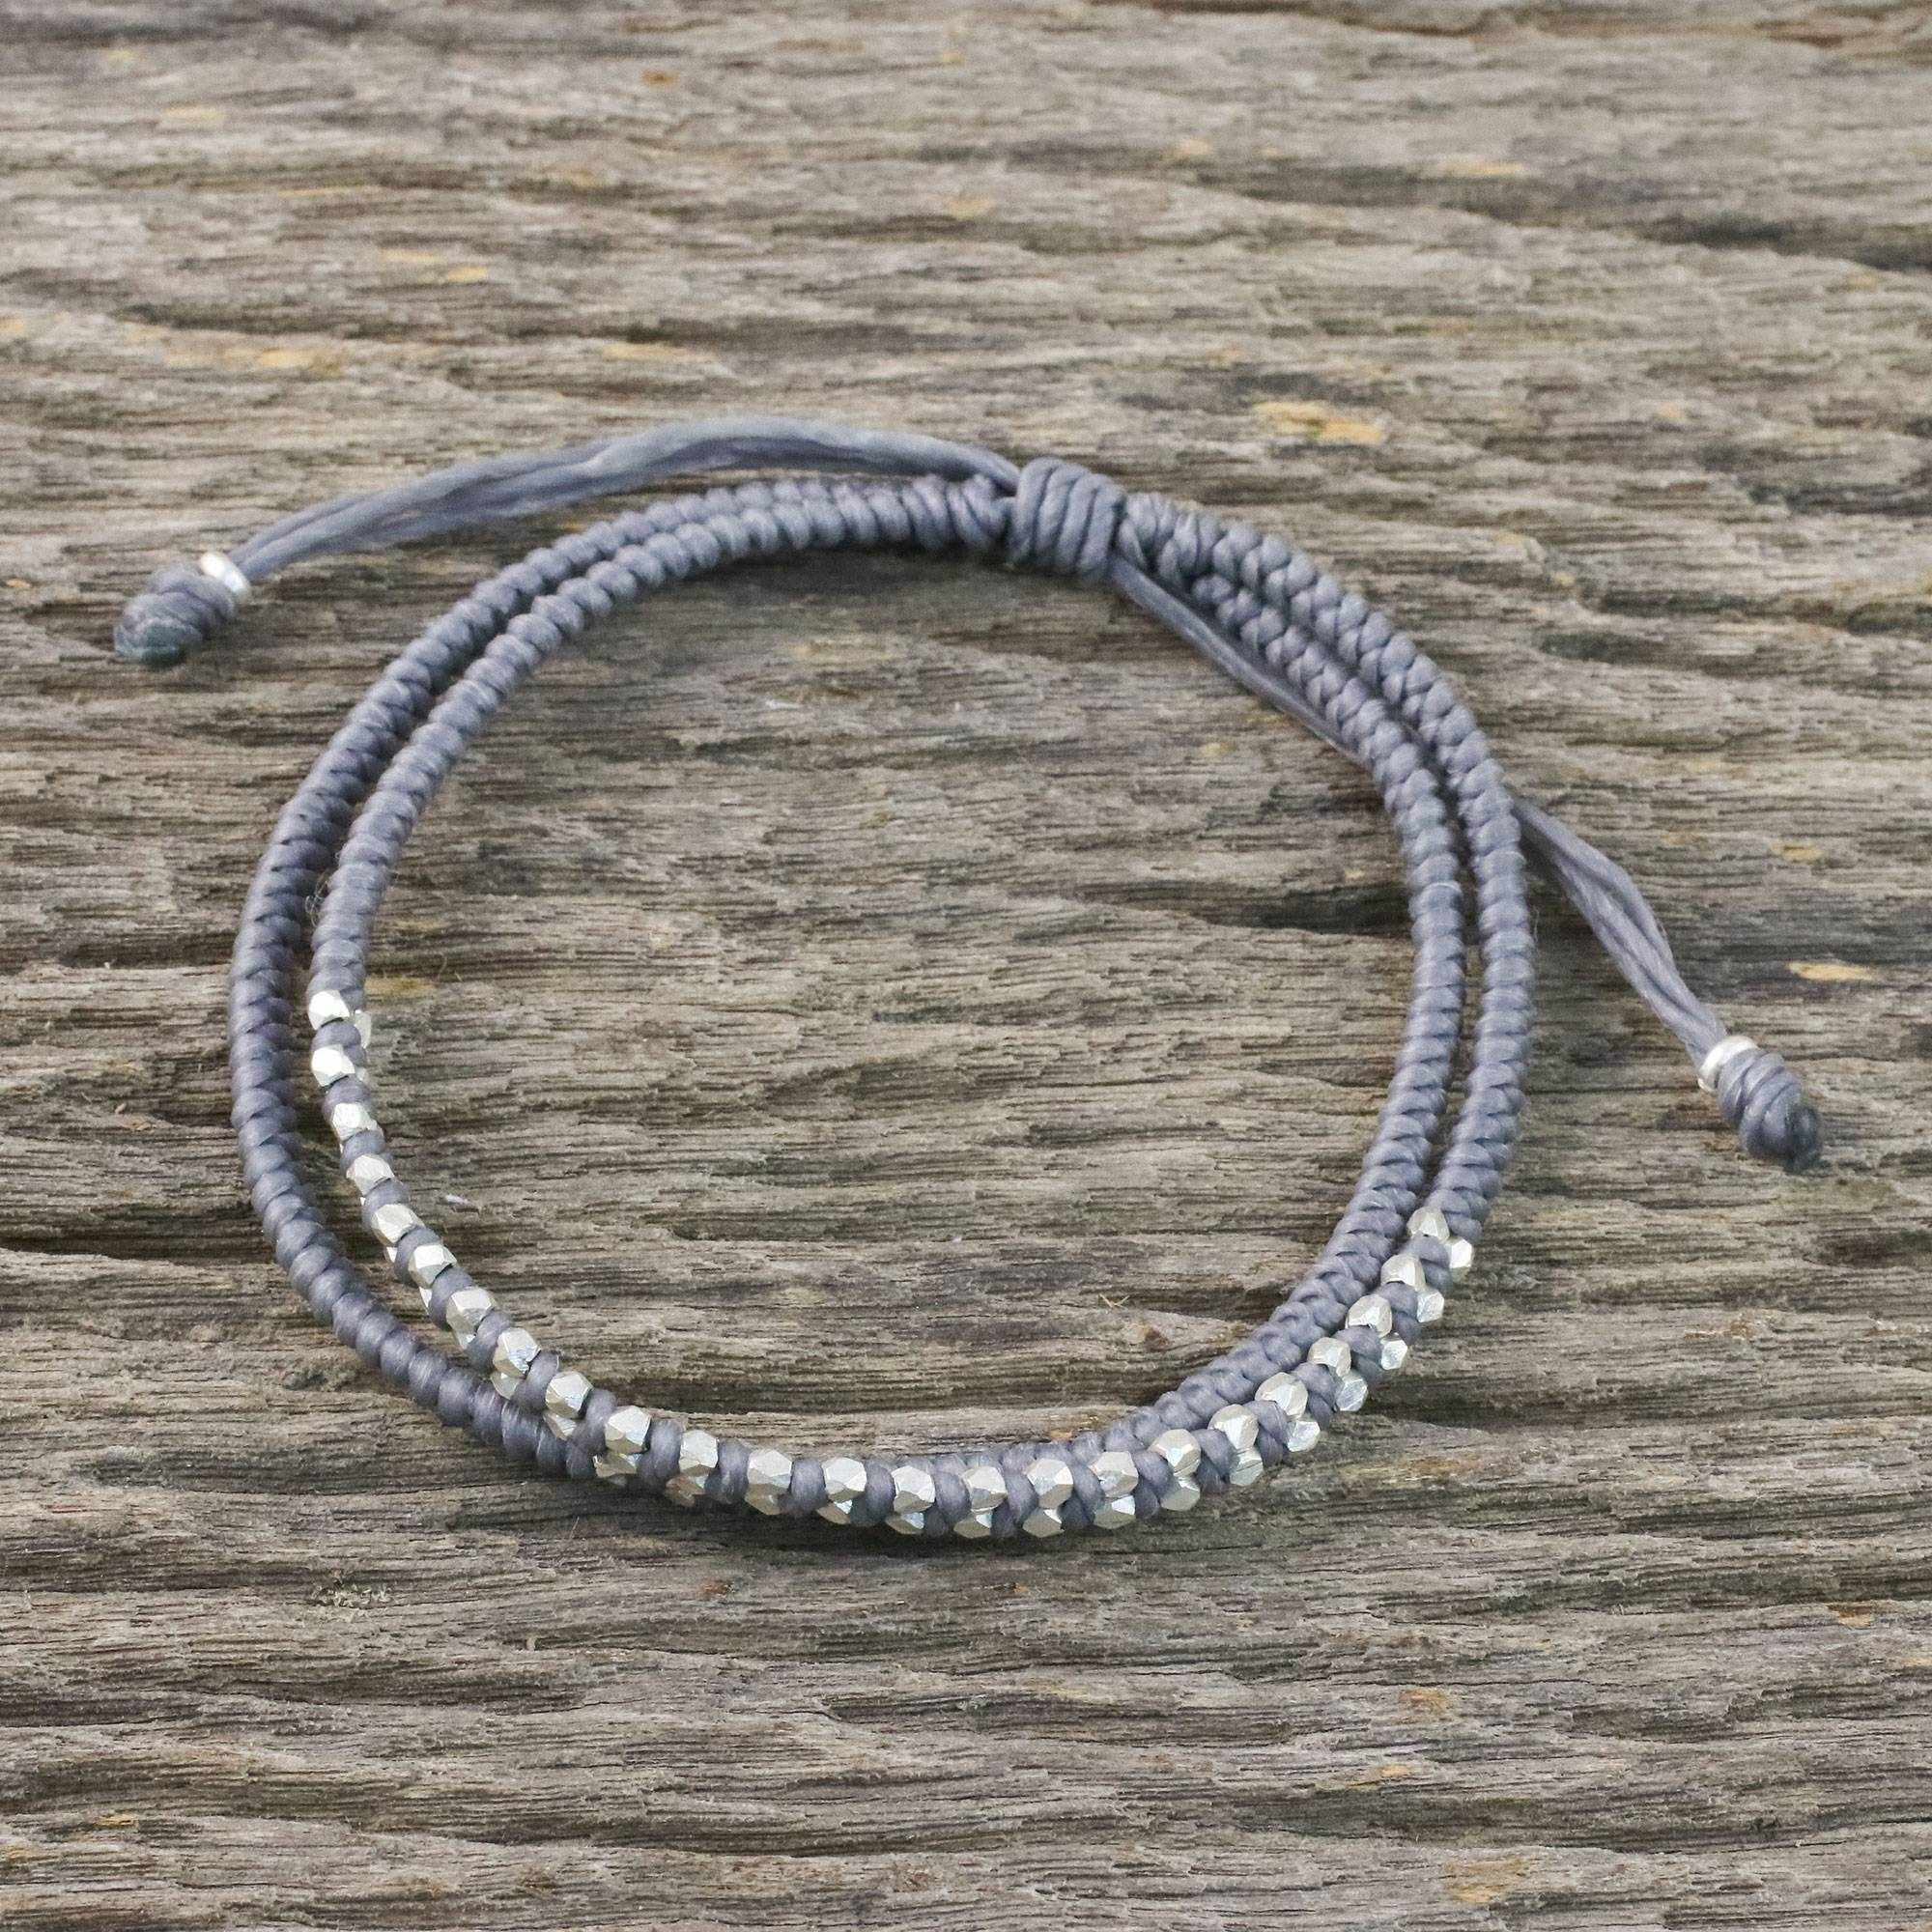 950 Silver and Waxed Cord Bracelet from Thailand, 'Everyday Thai in Steel  Grey'